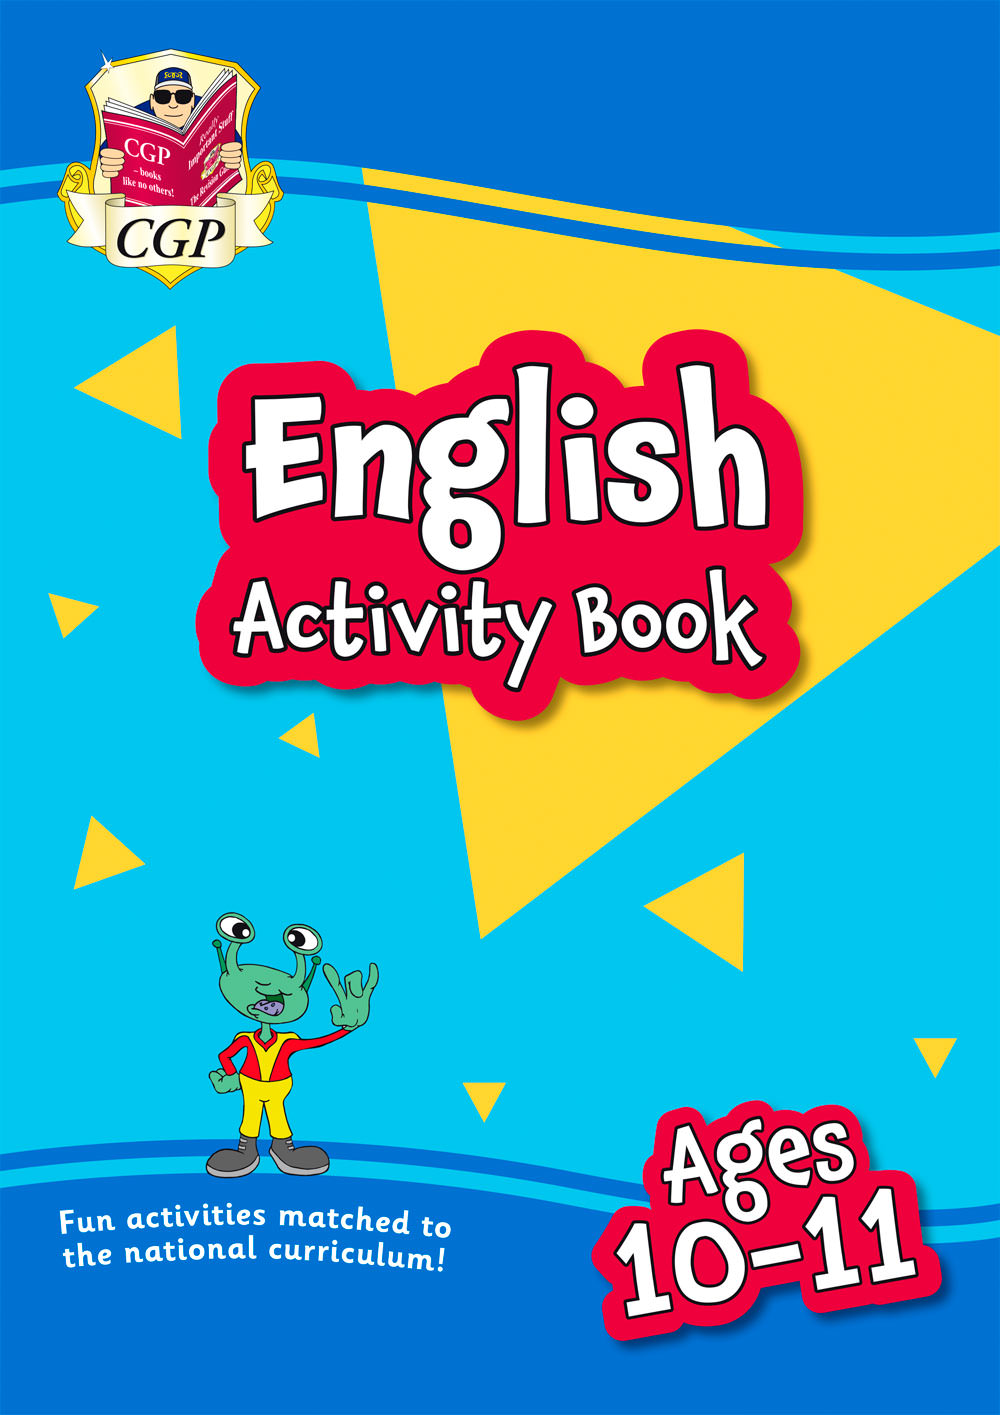 EPF6Q21 - New English Activity Book for Ages 10-11